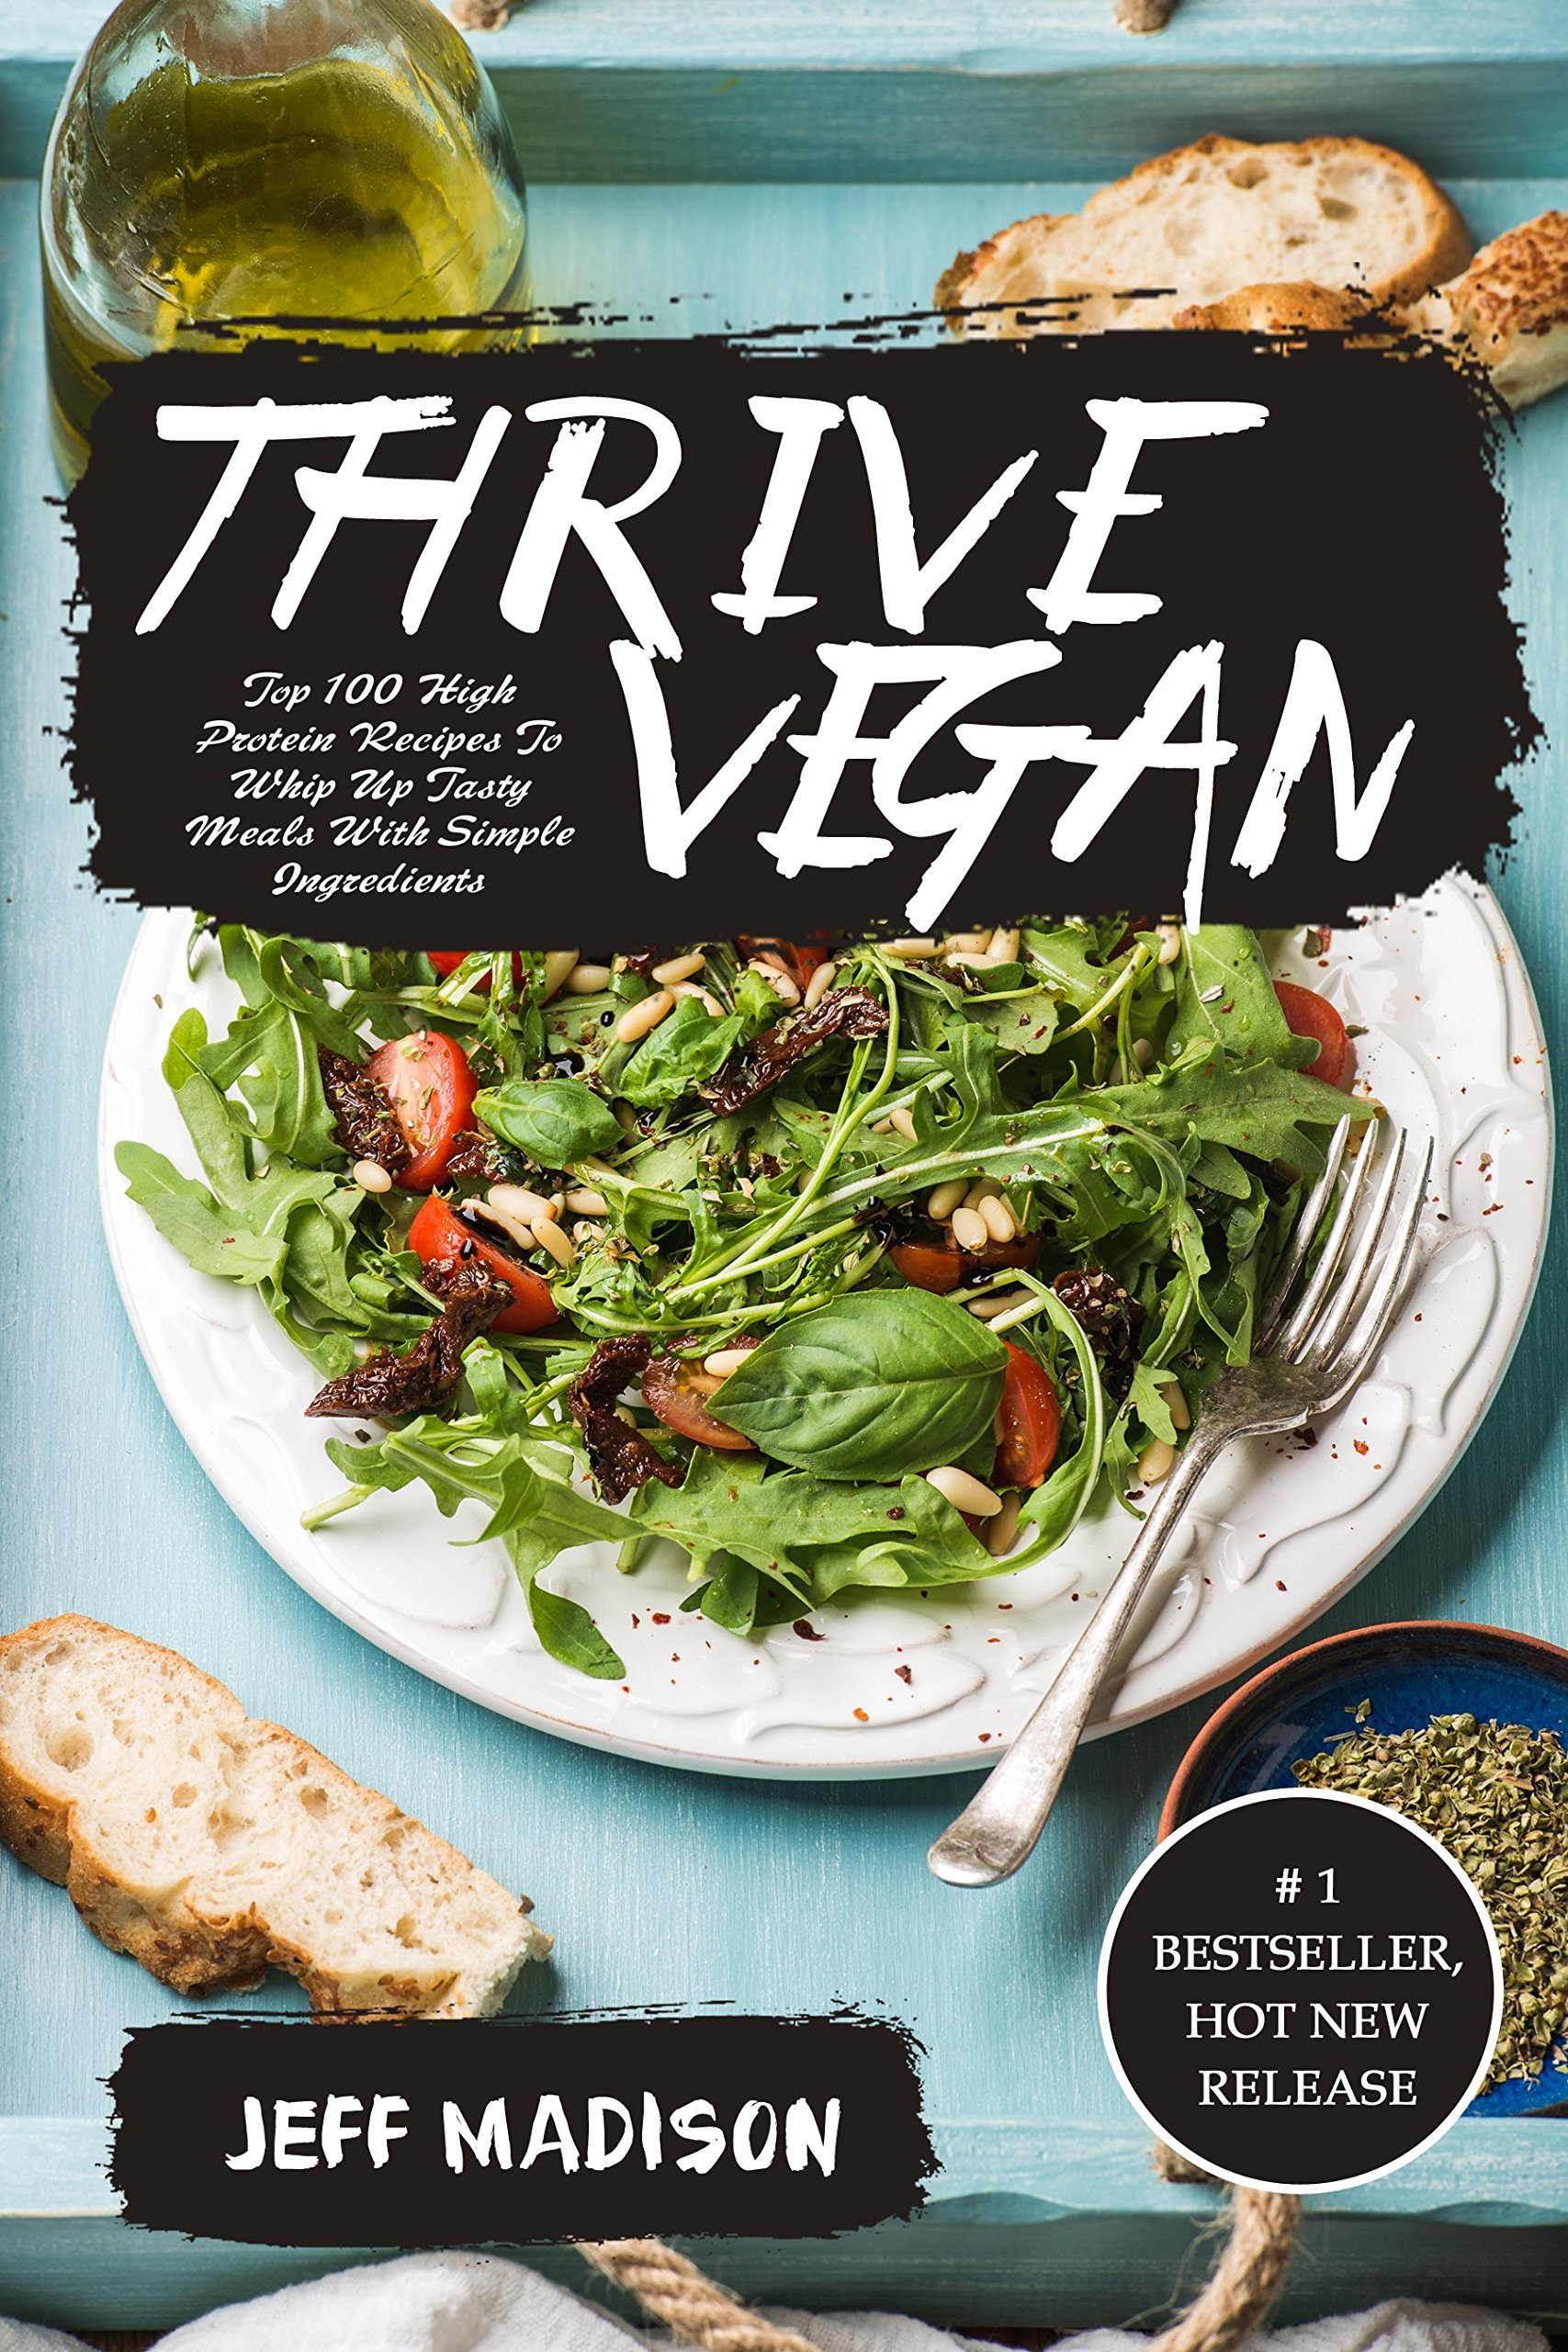 Thrive Vegan Top 100 High Protein Recipes To Whip Up Tasty Meals With Simple Ingredients Good Food Series Kindle Edition By Jeff Madison